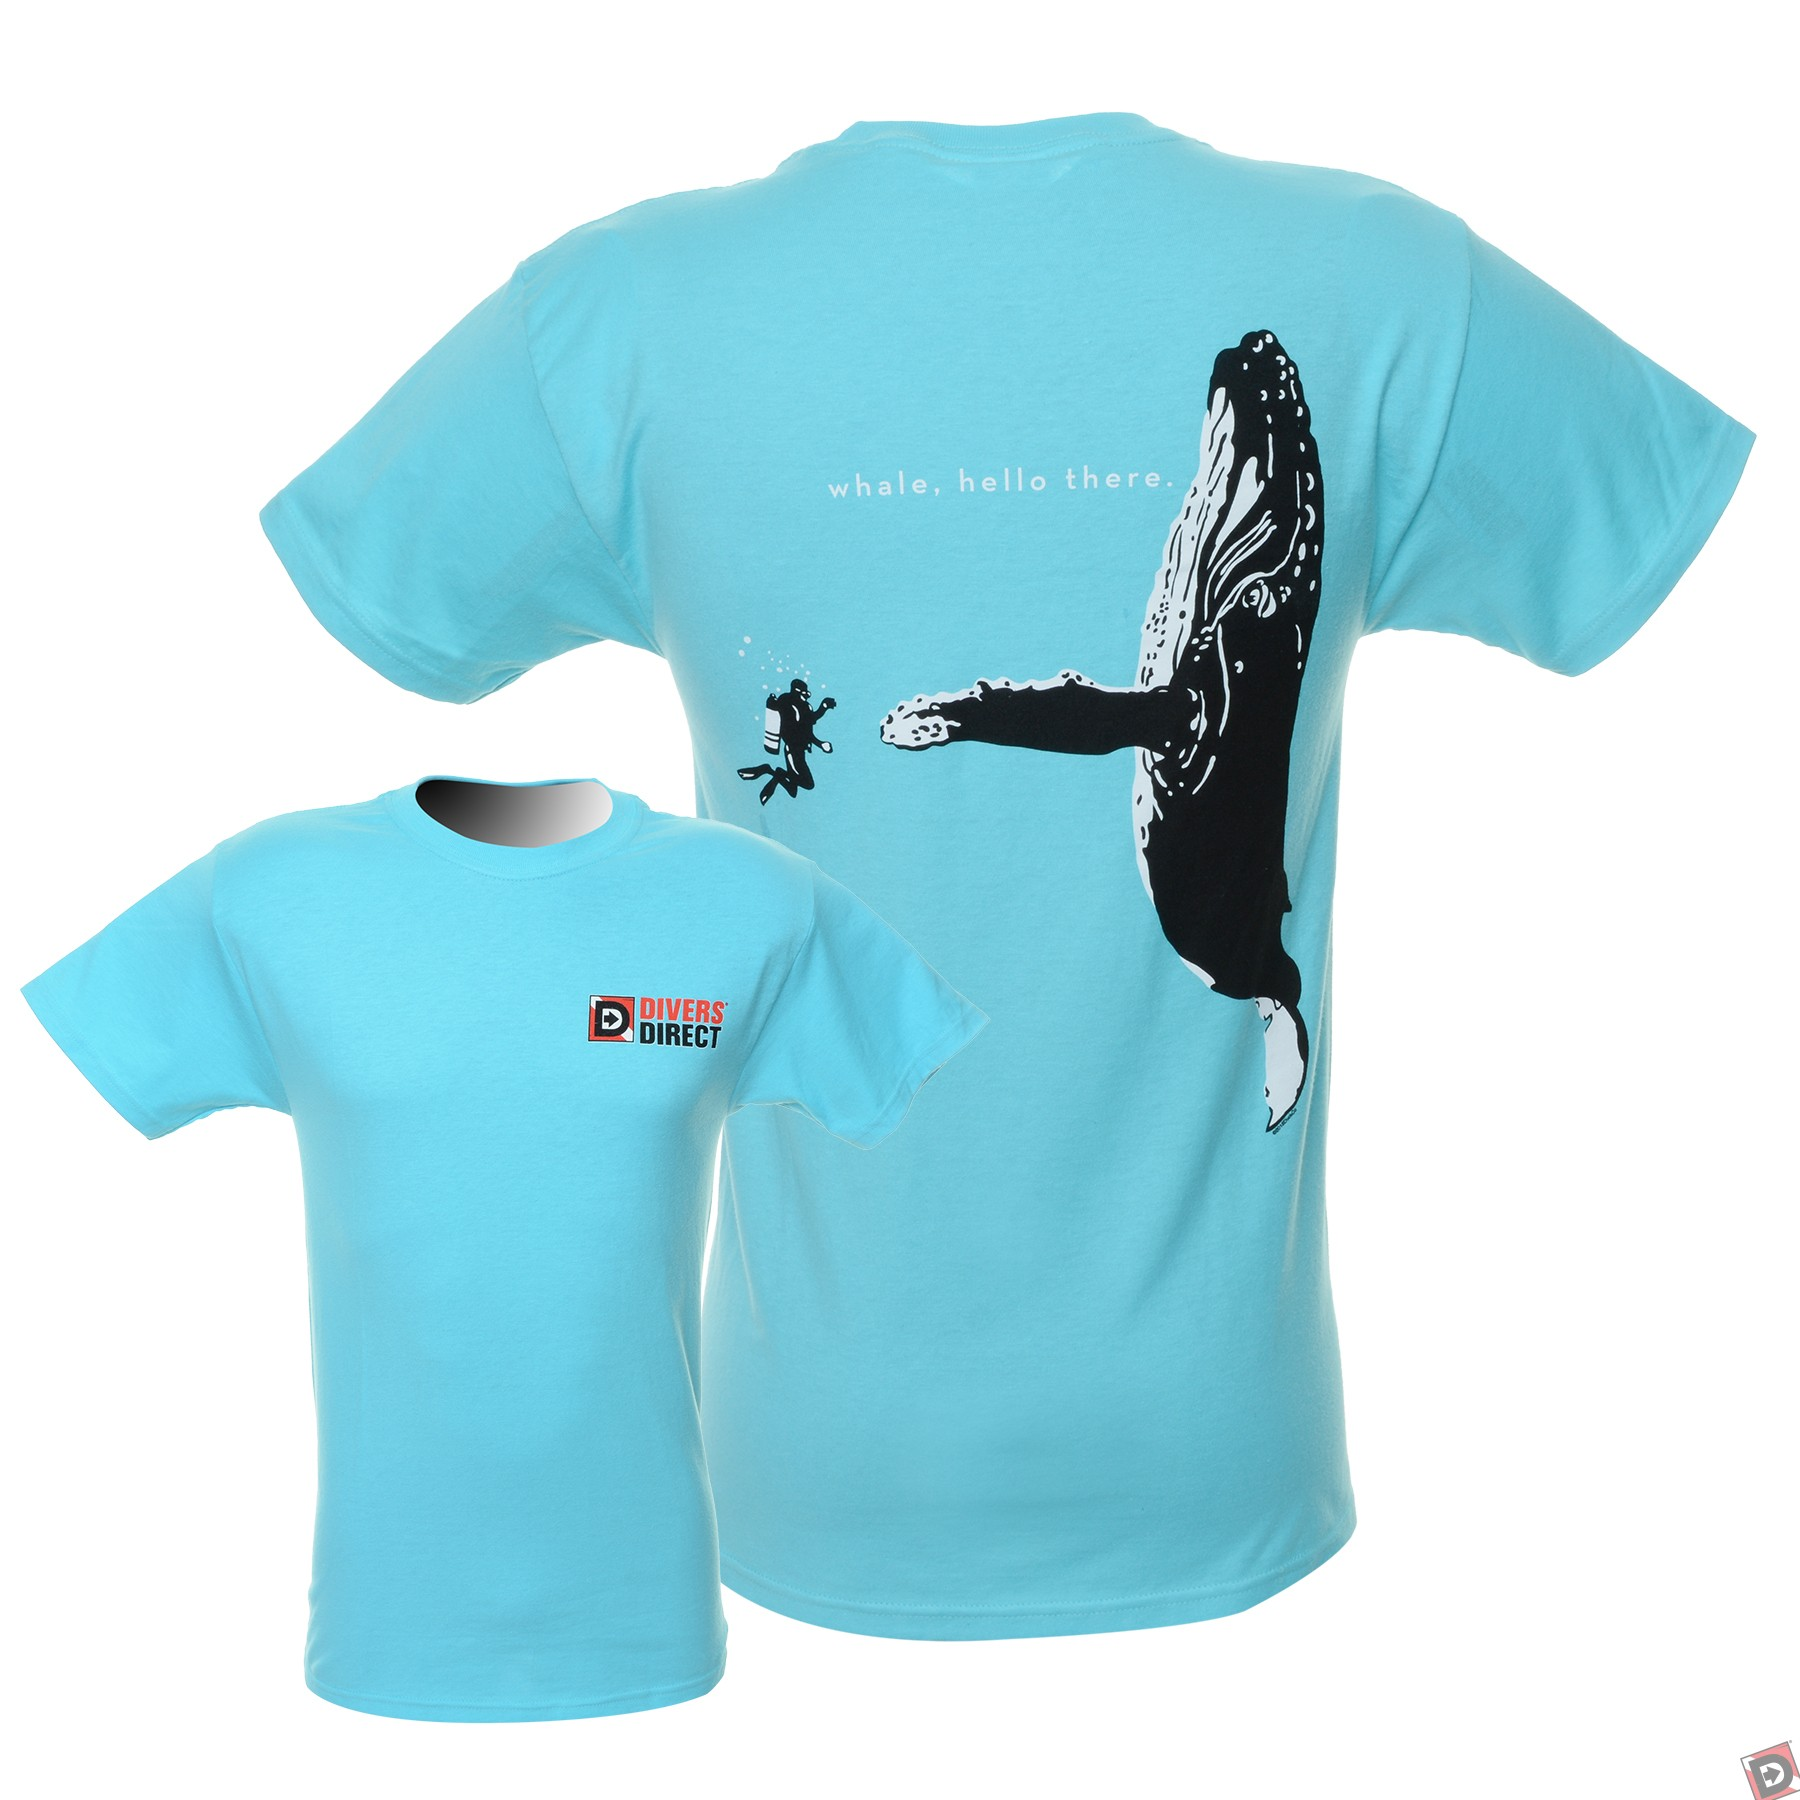 Whale hello there dive t shirt for Whale emblem on shirt